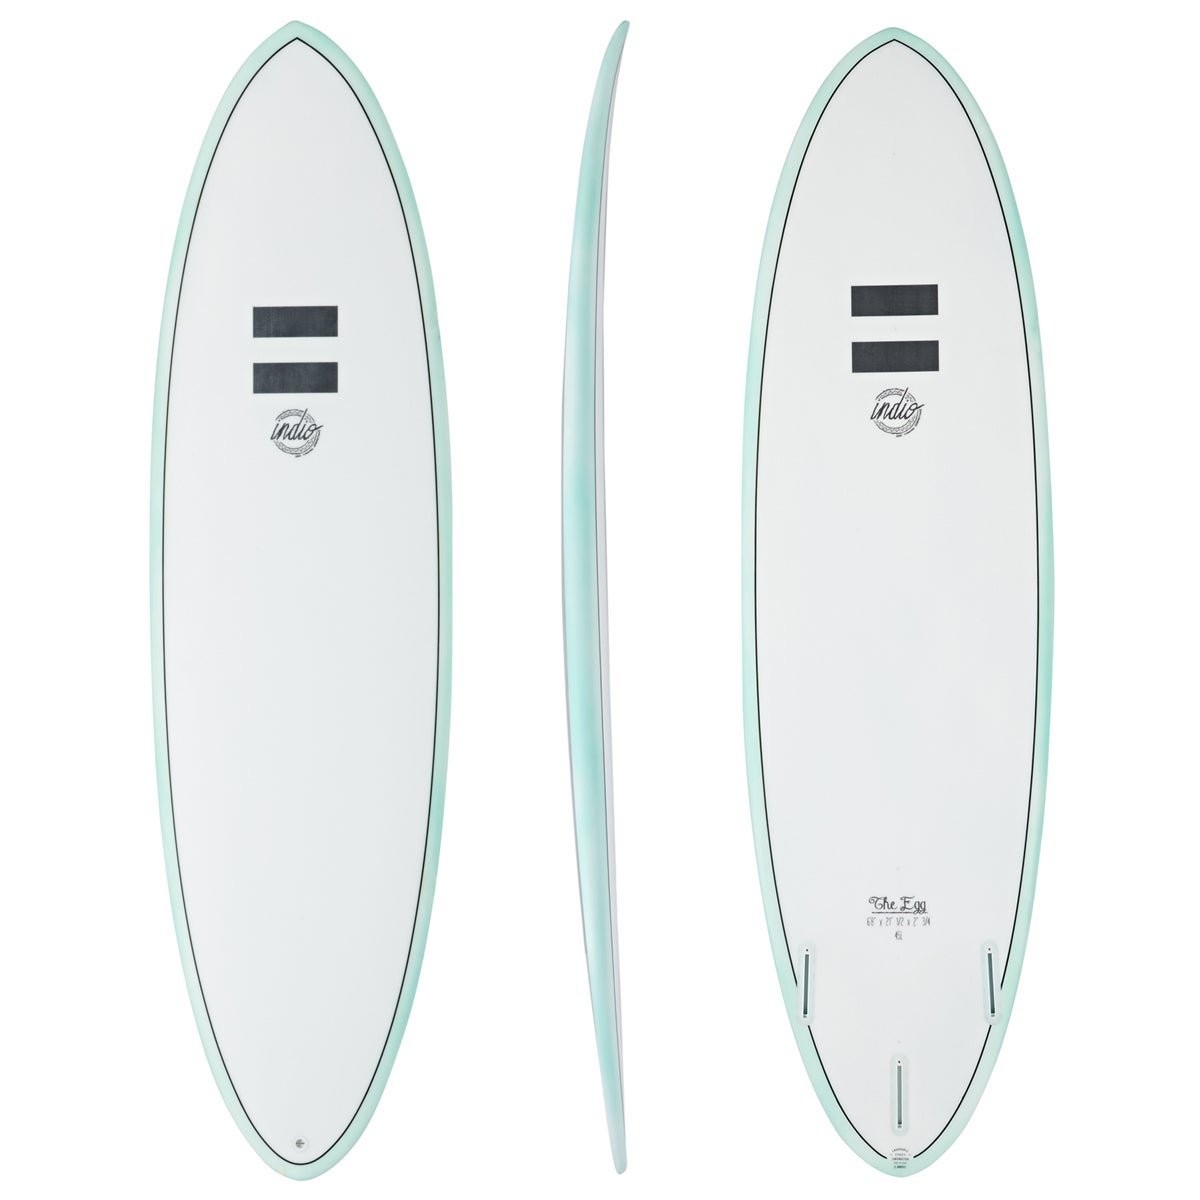 Indio Endurance The Egg Surfboard - Pinline Mint